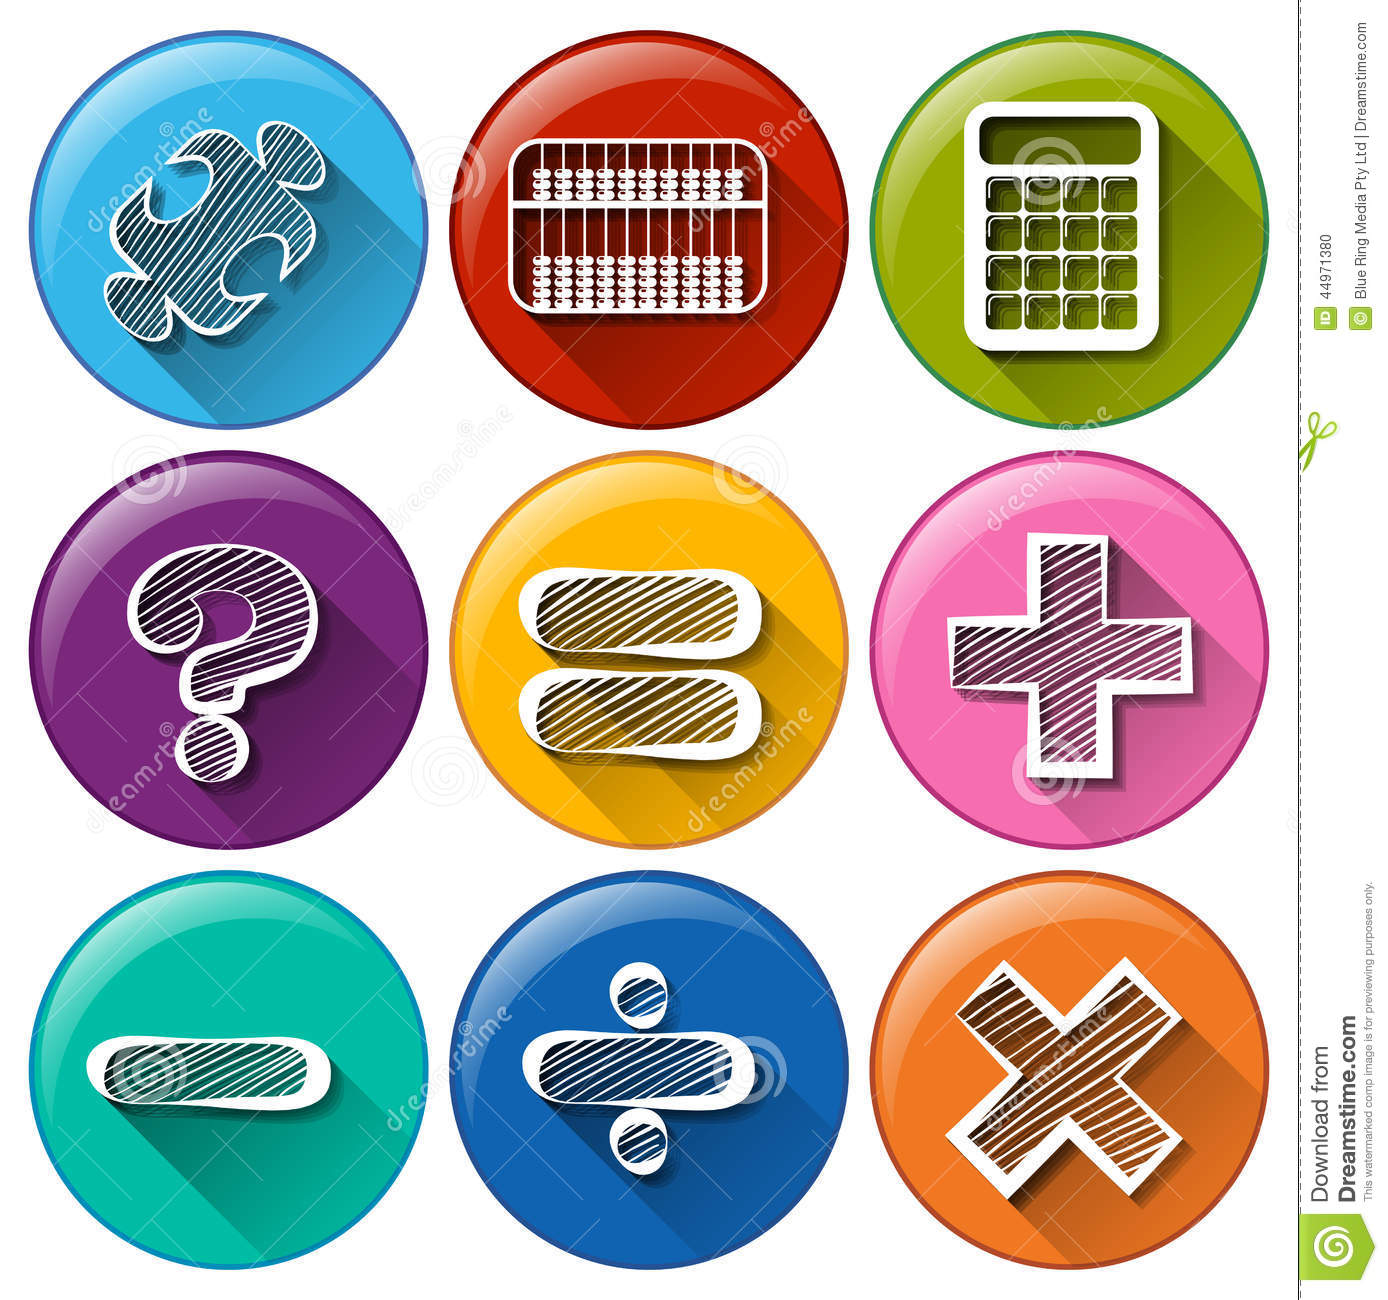 Round Buttons With The Different Mathematical Symbols Stock Vector